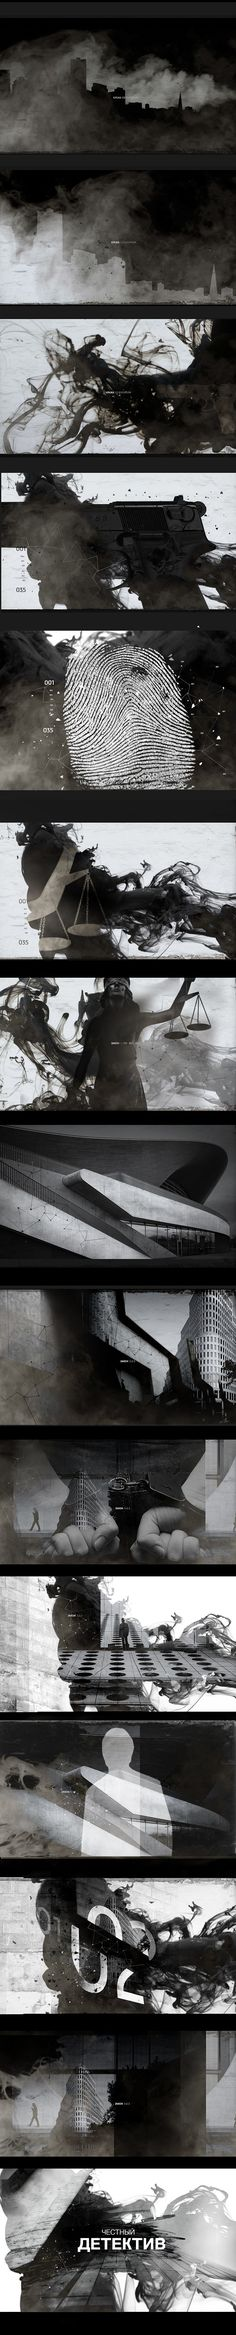 TRUE_DETECTIVE / RUSSIA_1_CHANNEL on Behance - title sequence - openers - motion design